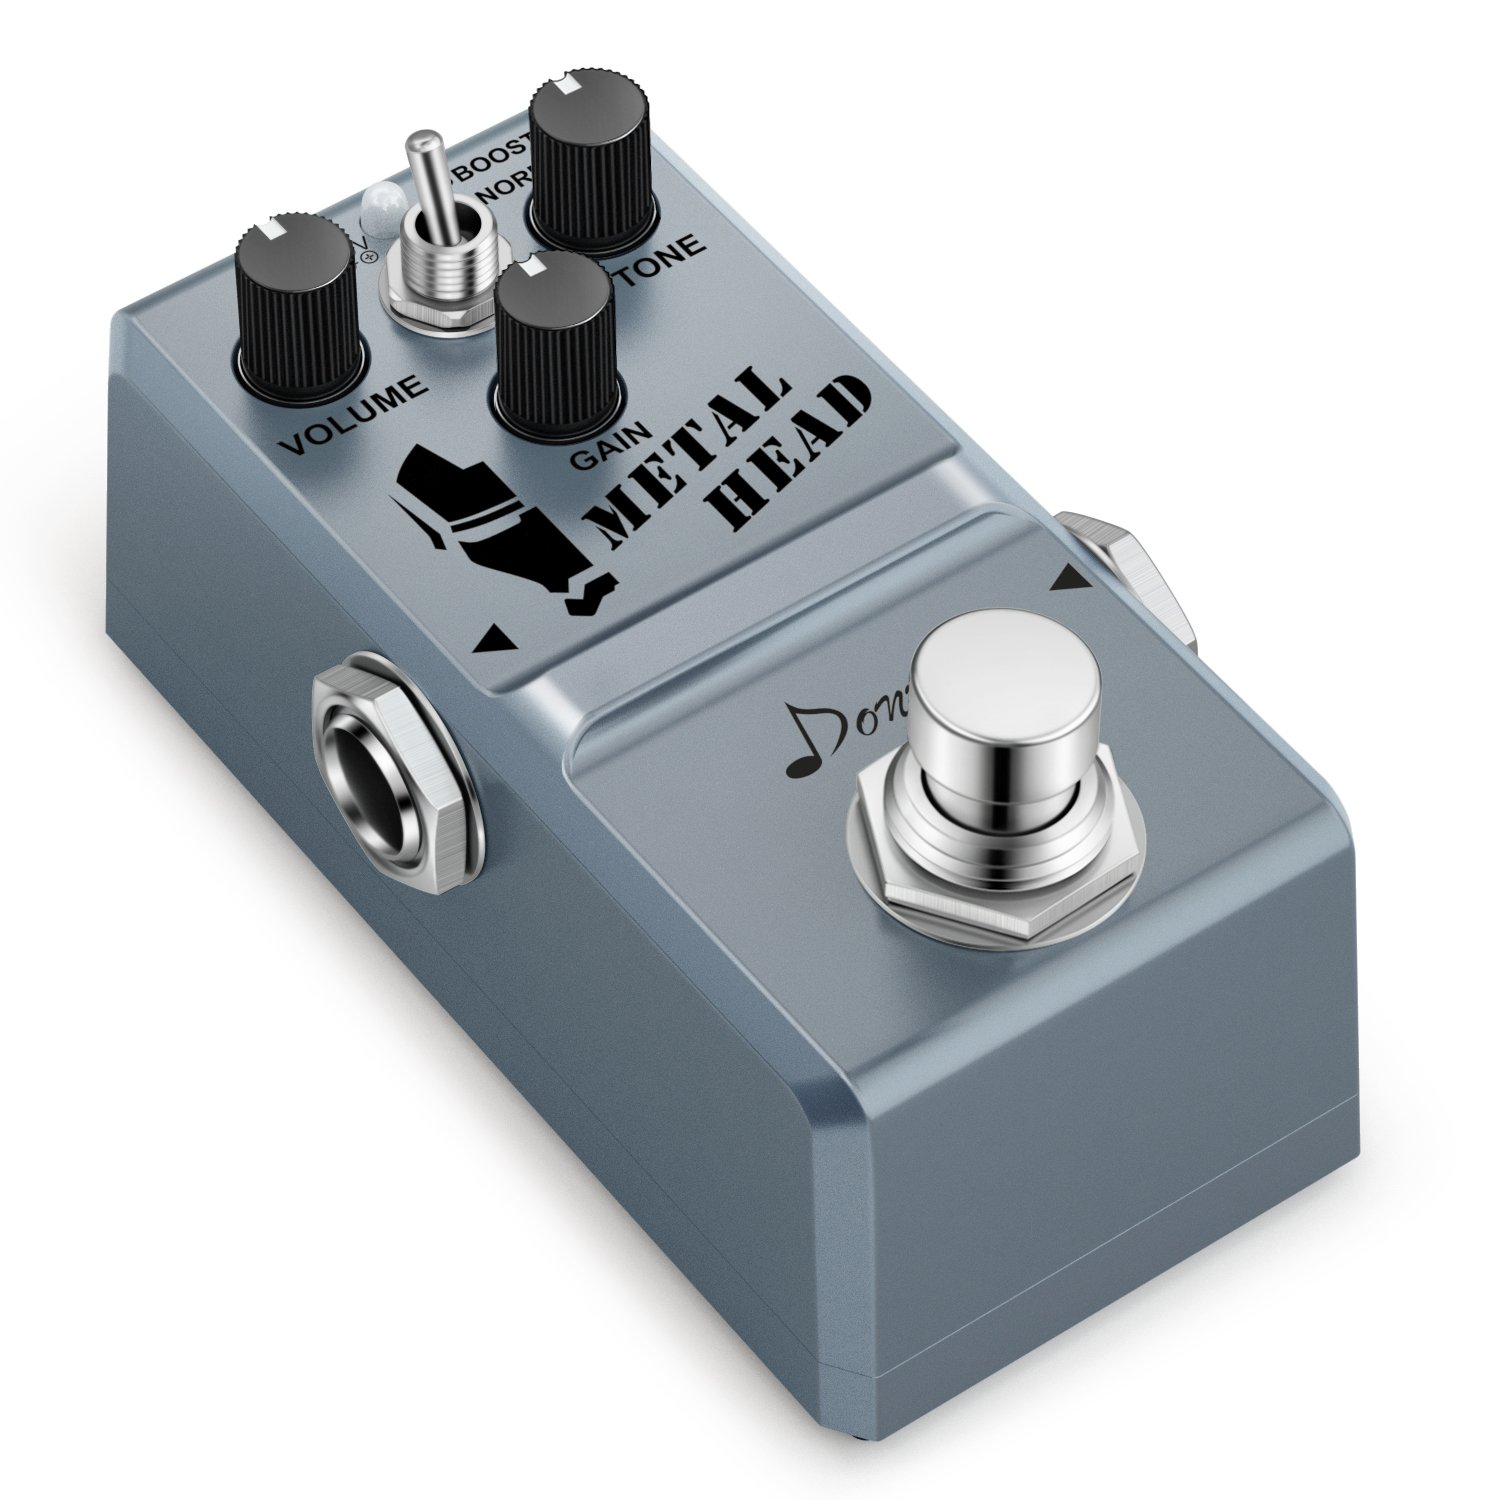 Top 10 Best Donner Guitar Pedals Reviews in 2020 2